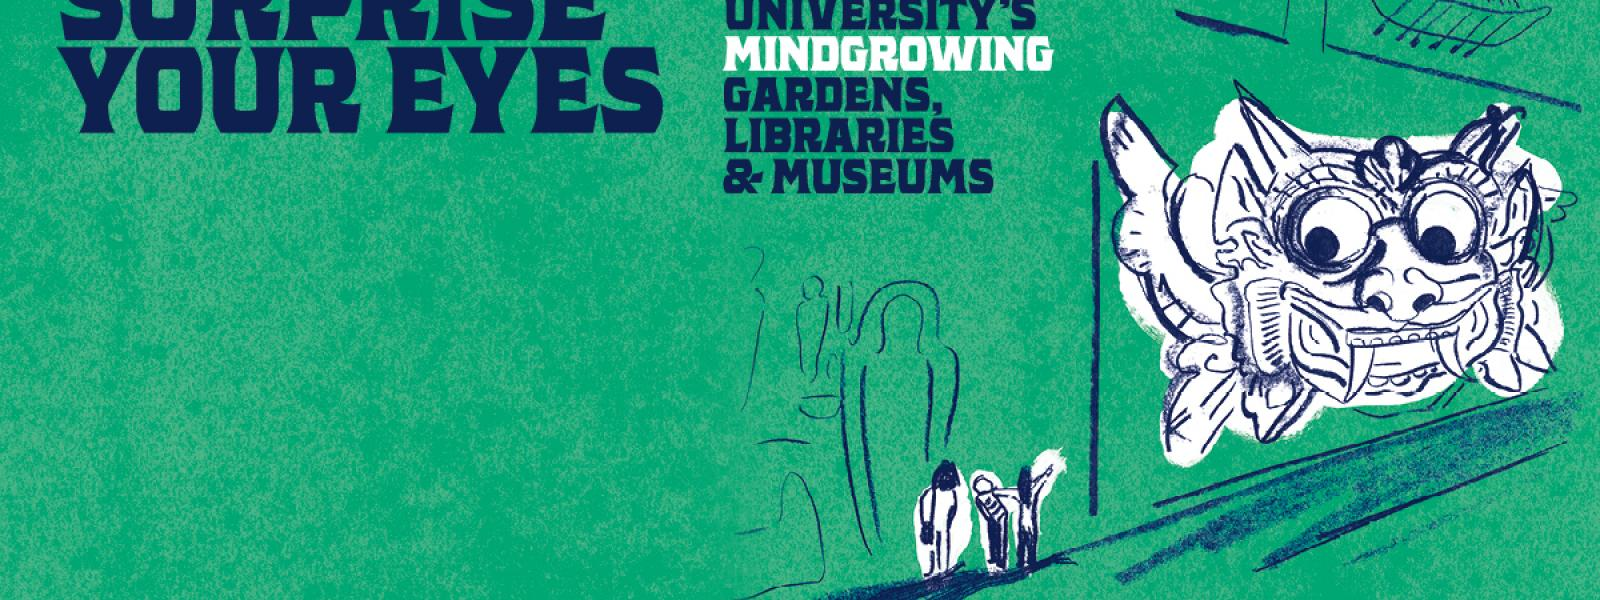 GLAM Mindgrowing banner featuring objects from Pitt Rivers Museum